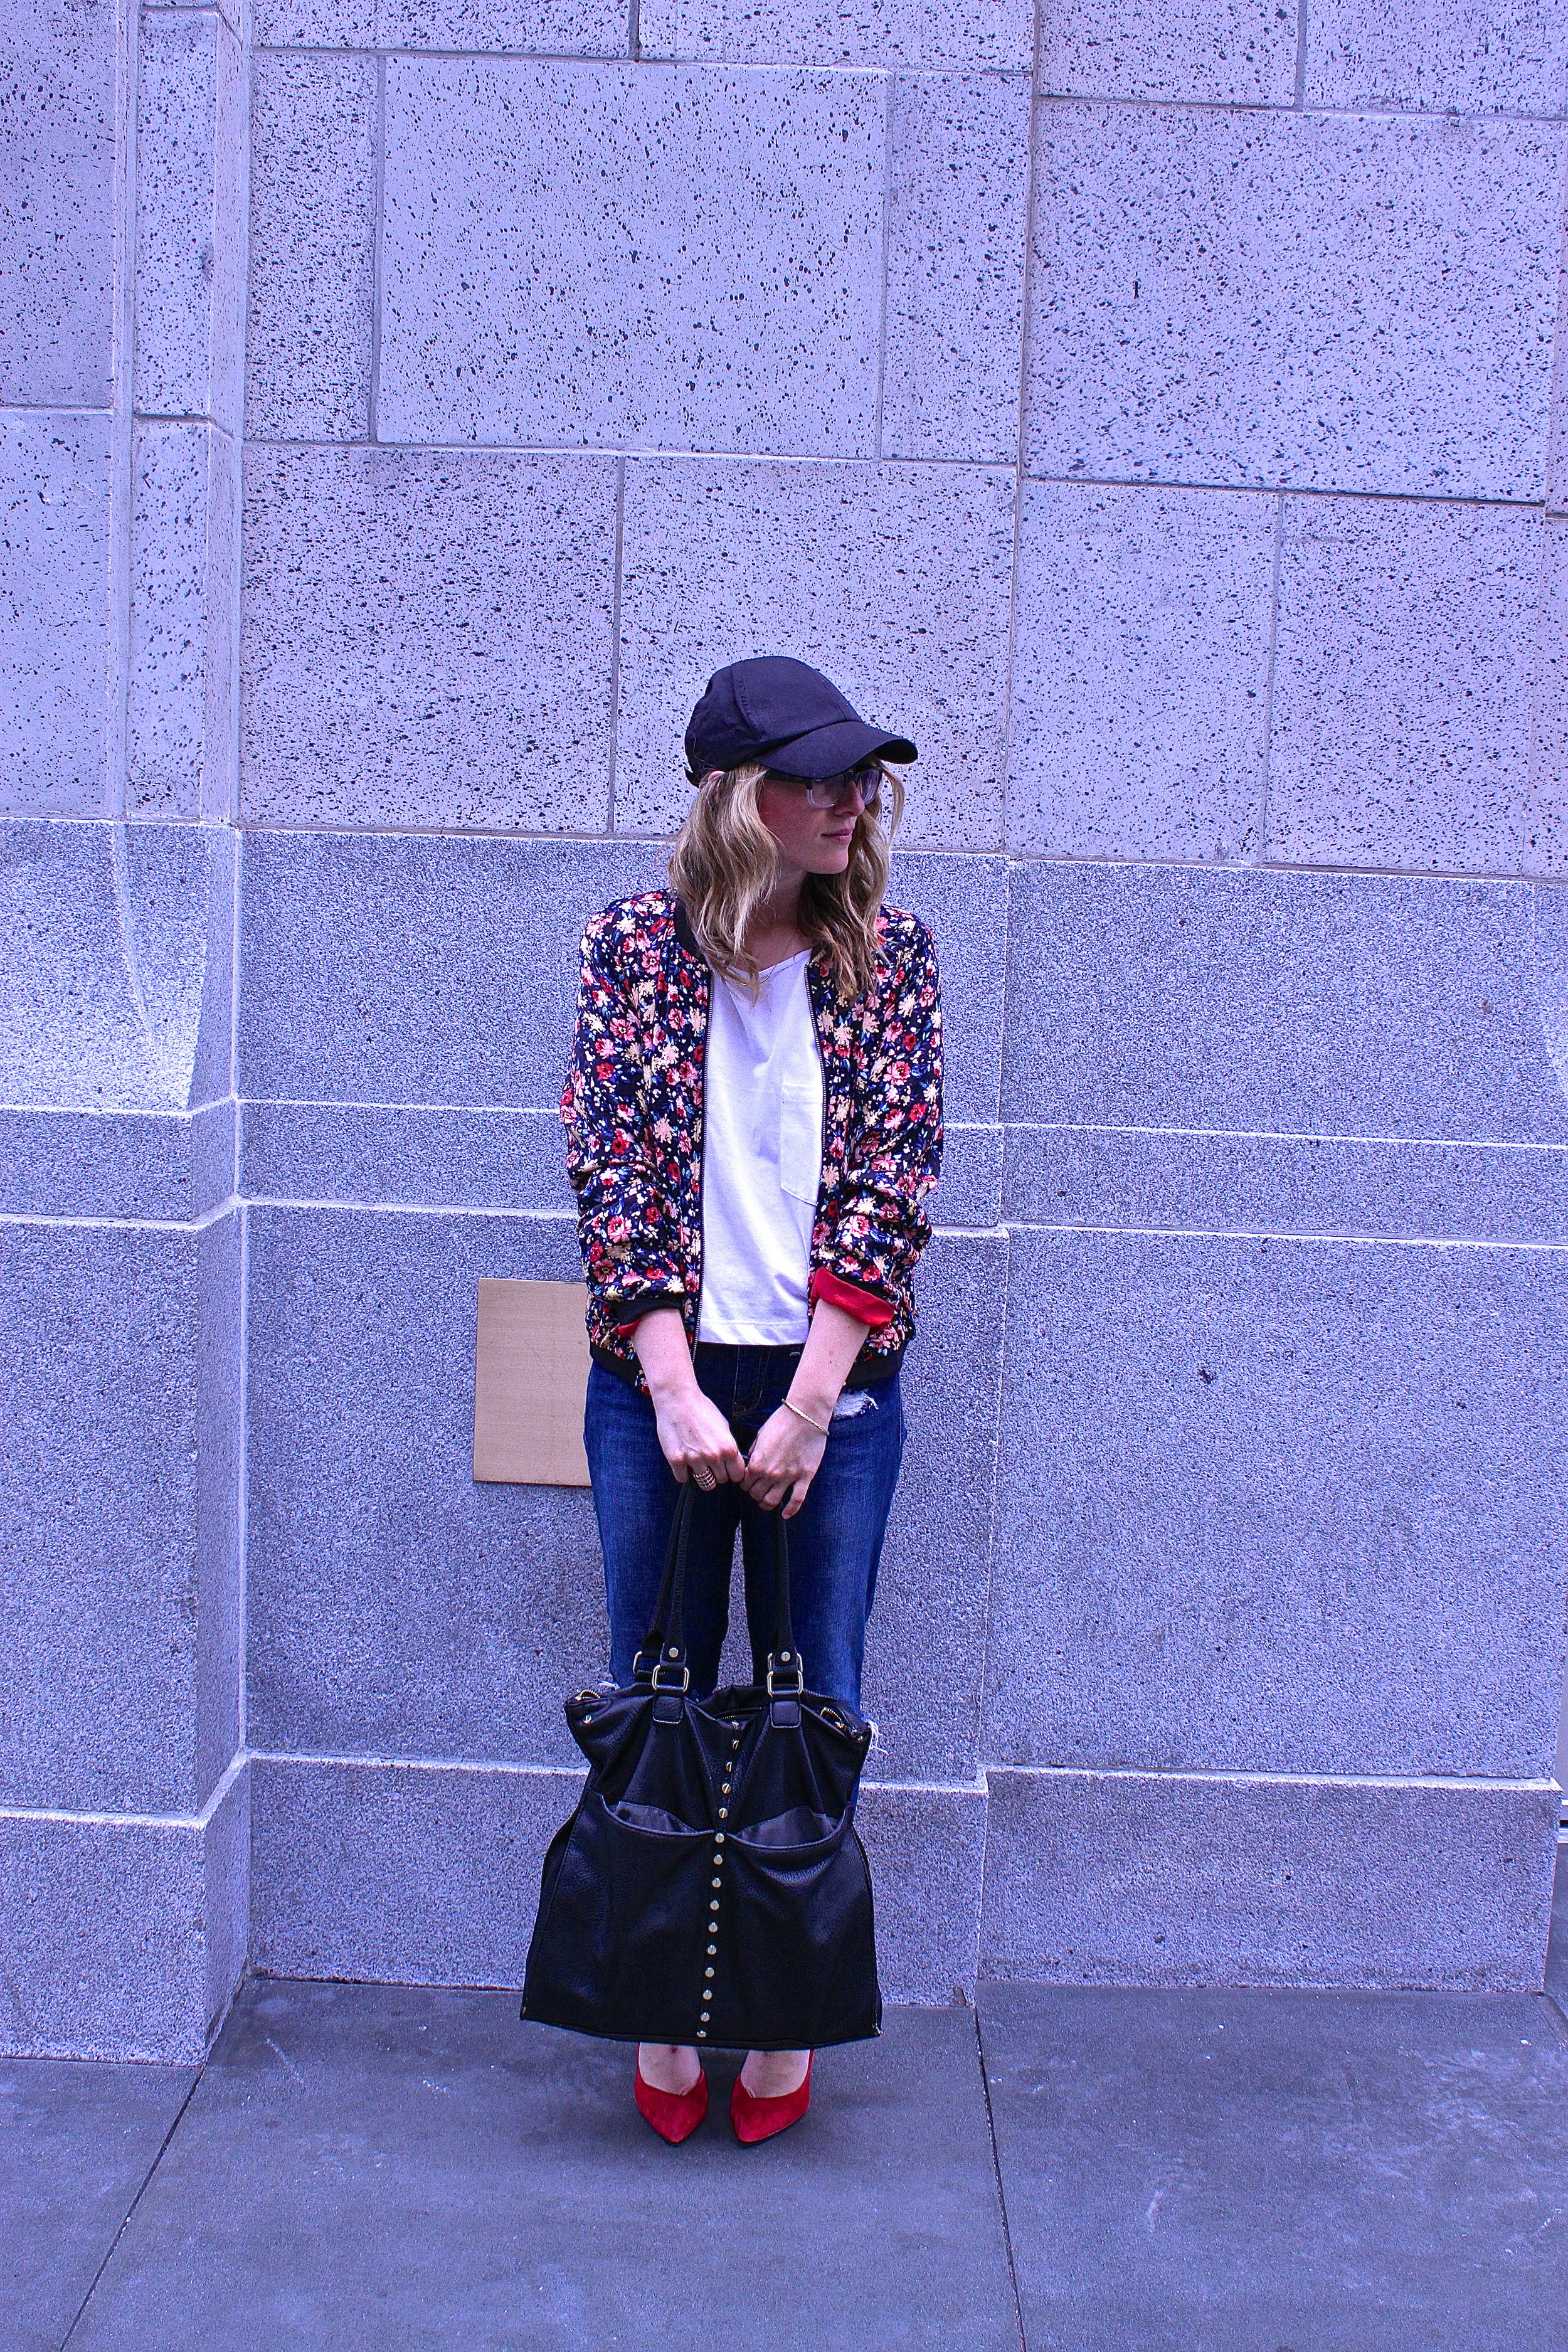 Bomber: Zara via Crossroads Trading | Shirt: F21 | Pants: Gap | Shoes: DSW | Hat: H&M